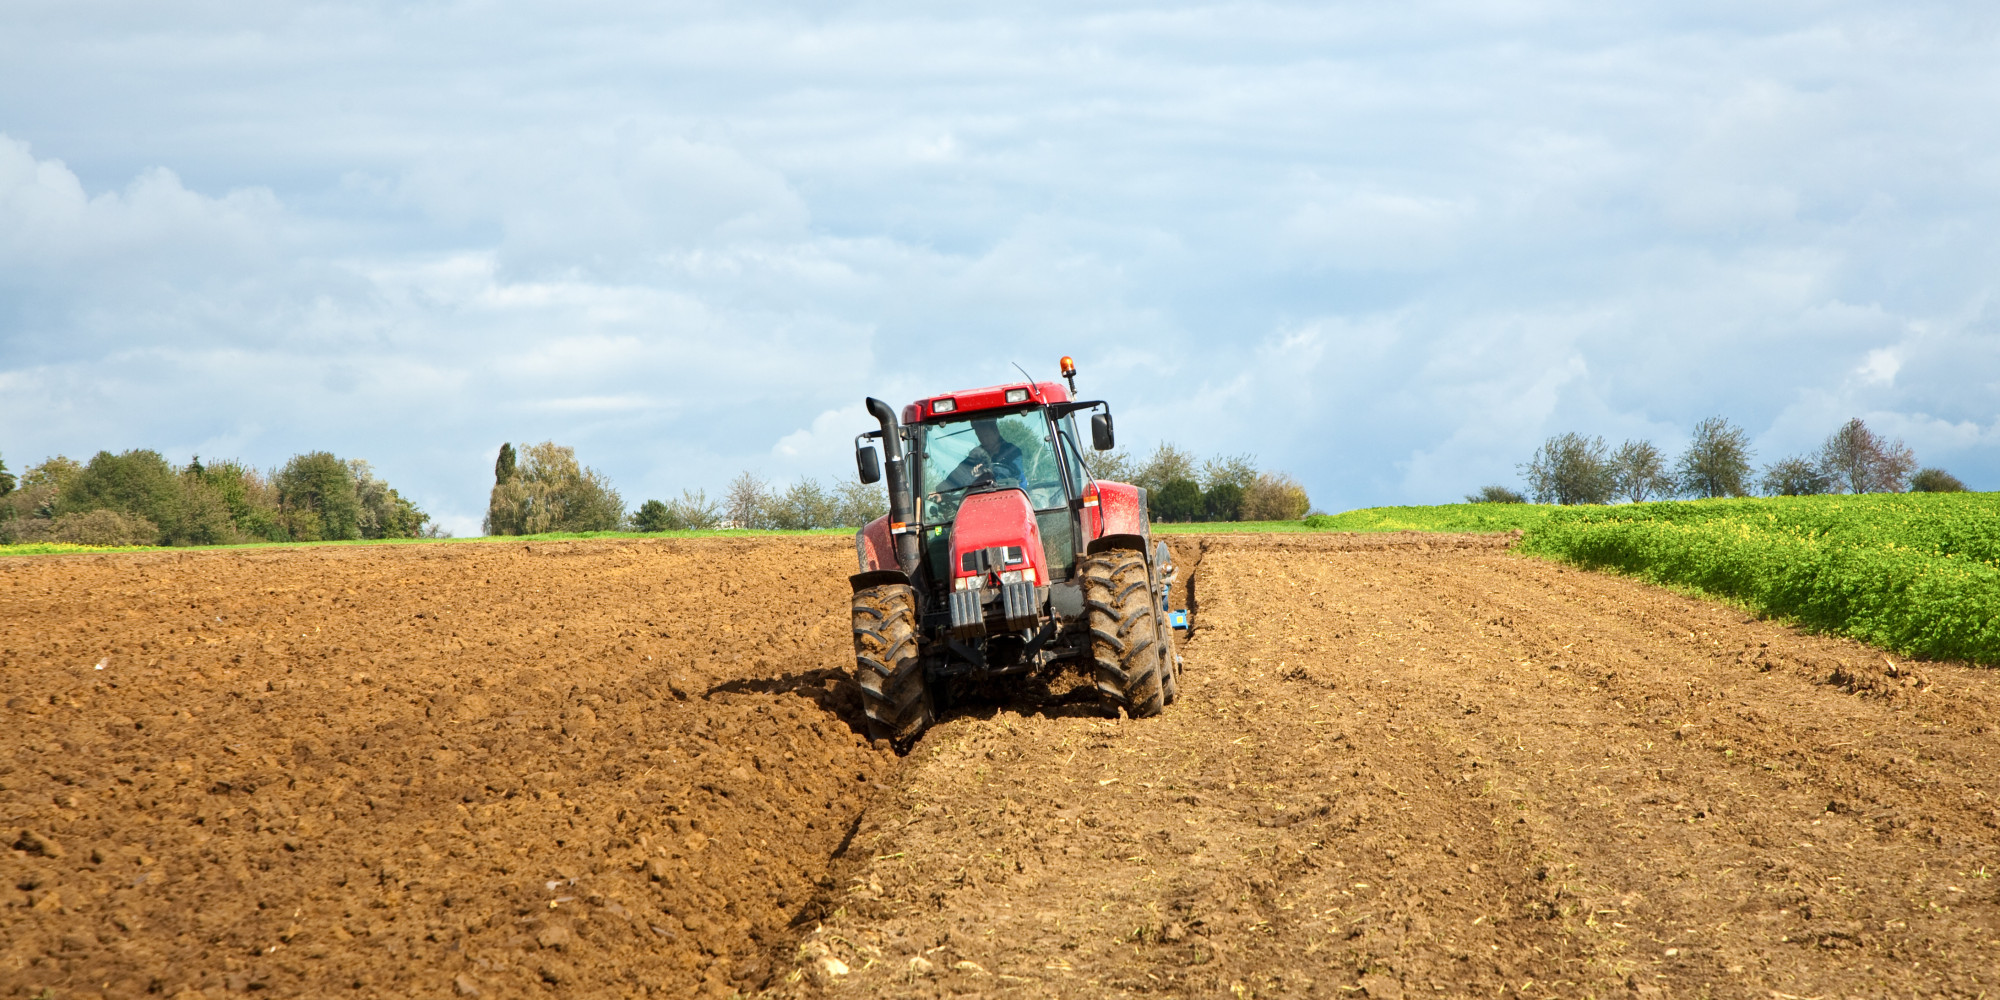 Farmer On Tractor : Boy aged dies in tractor accident on farm